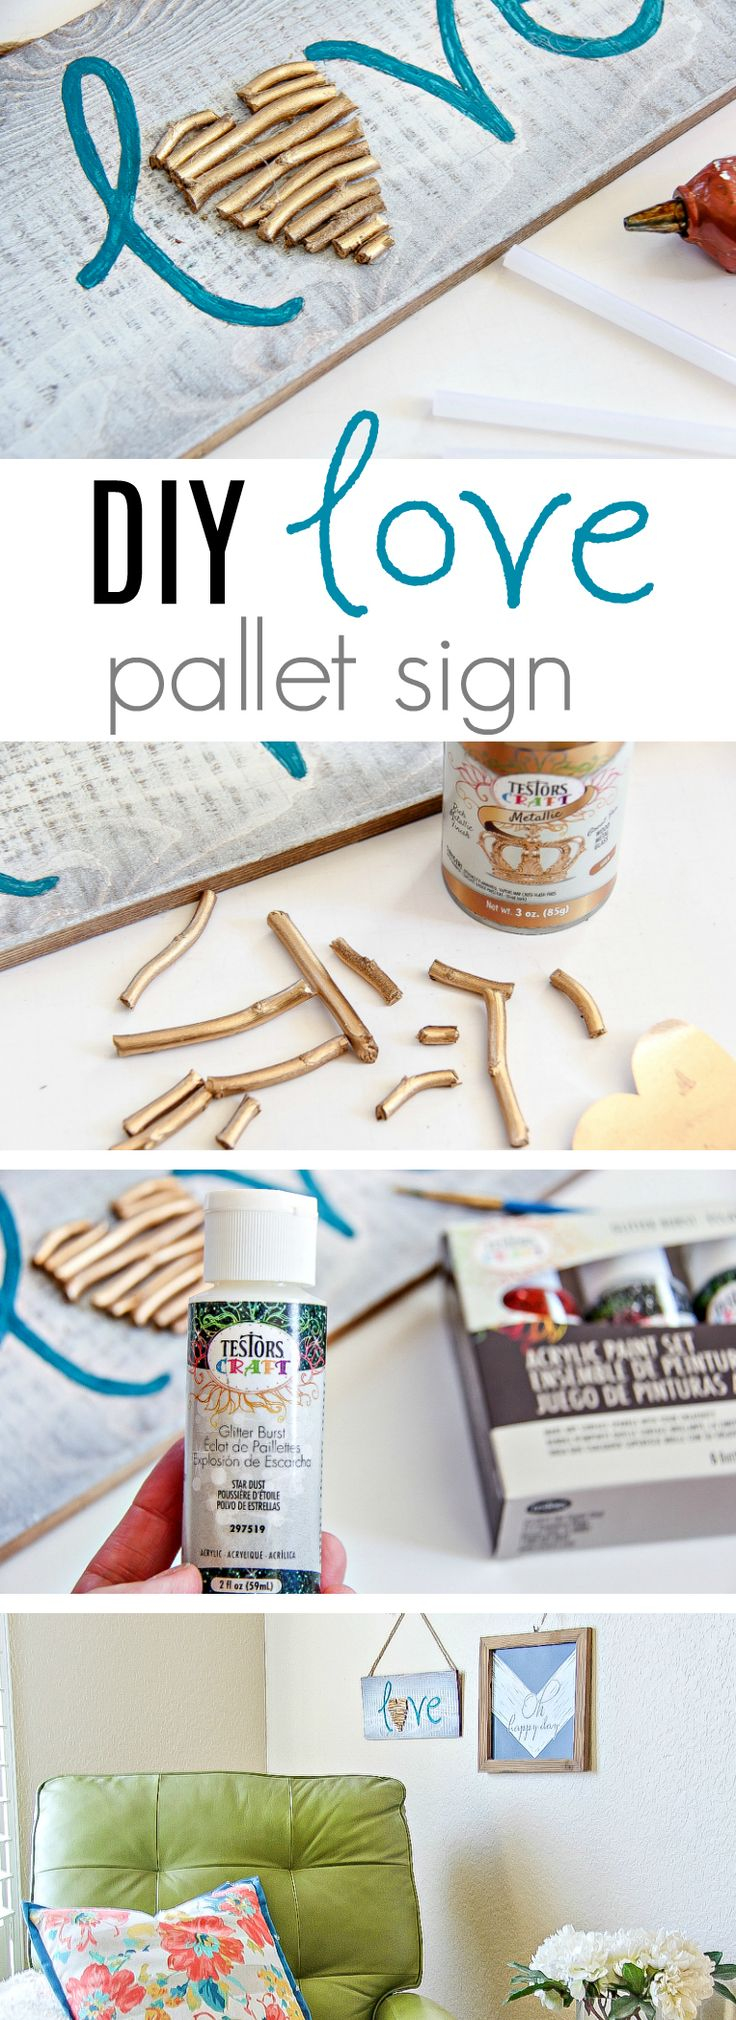 How To Make A Painted Love Sign Perfect For Valentine's Day - DIY Love Sign - Stick Craft #valentinesday #stickcraft #ad